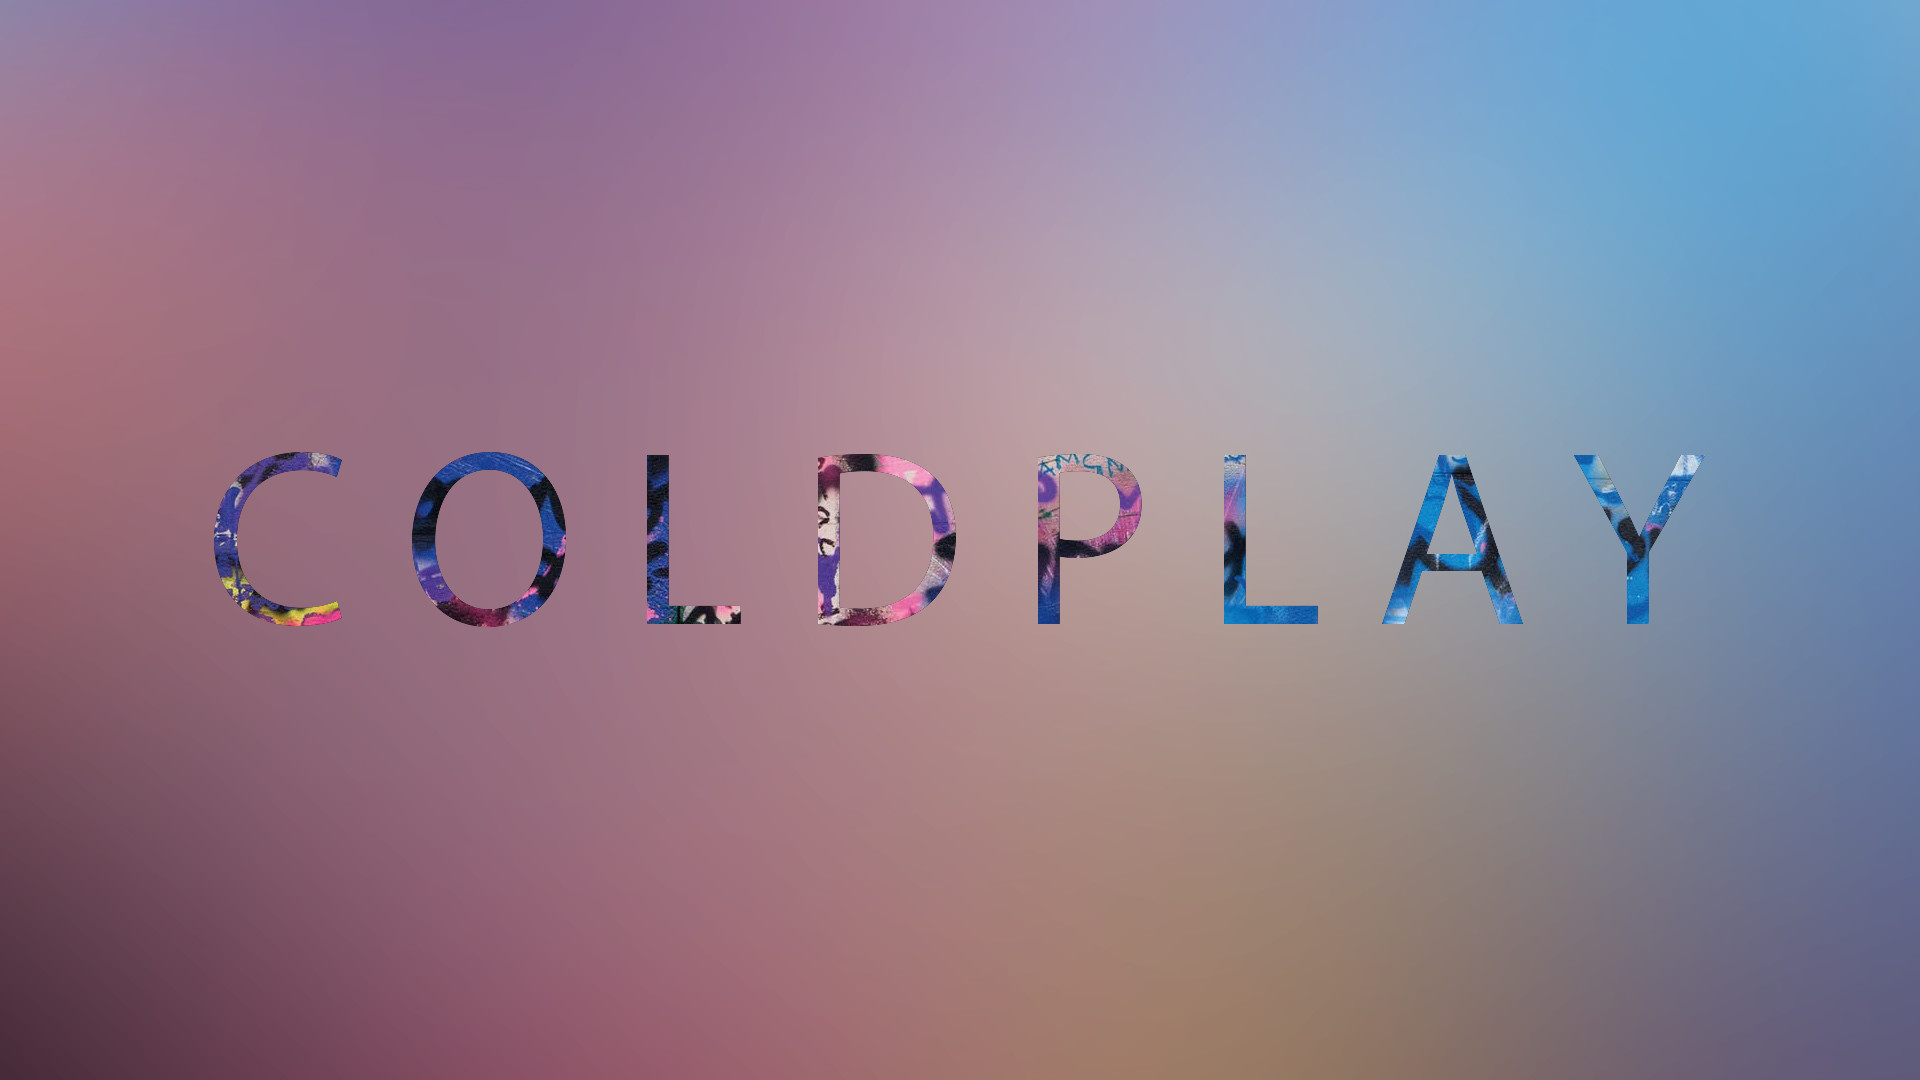 1920x1080 Coldplay, by Mariana Carns